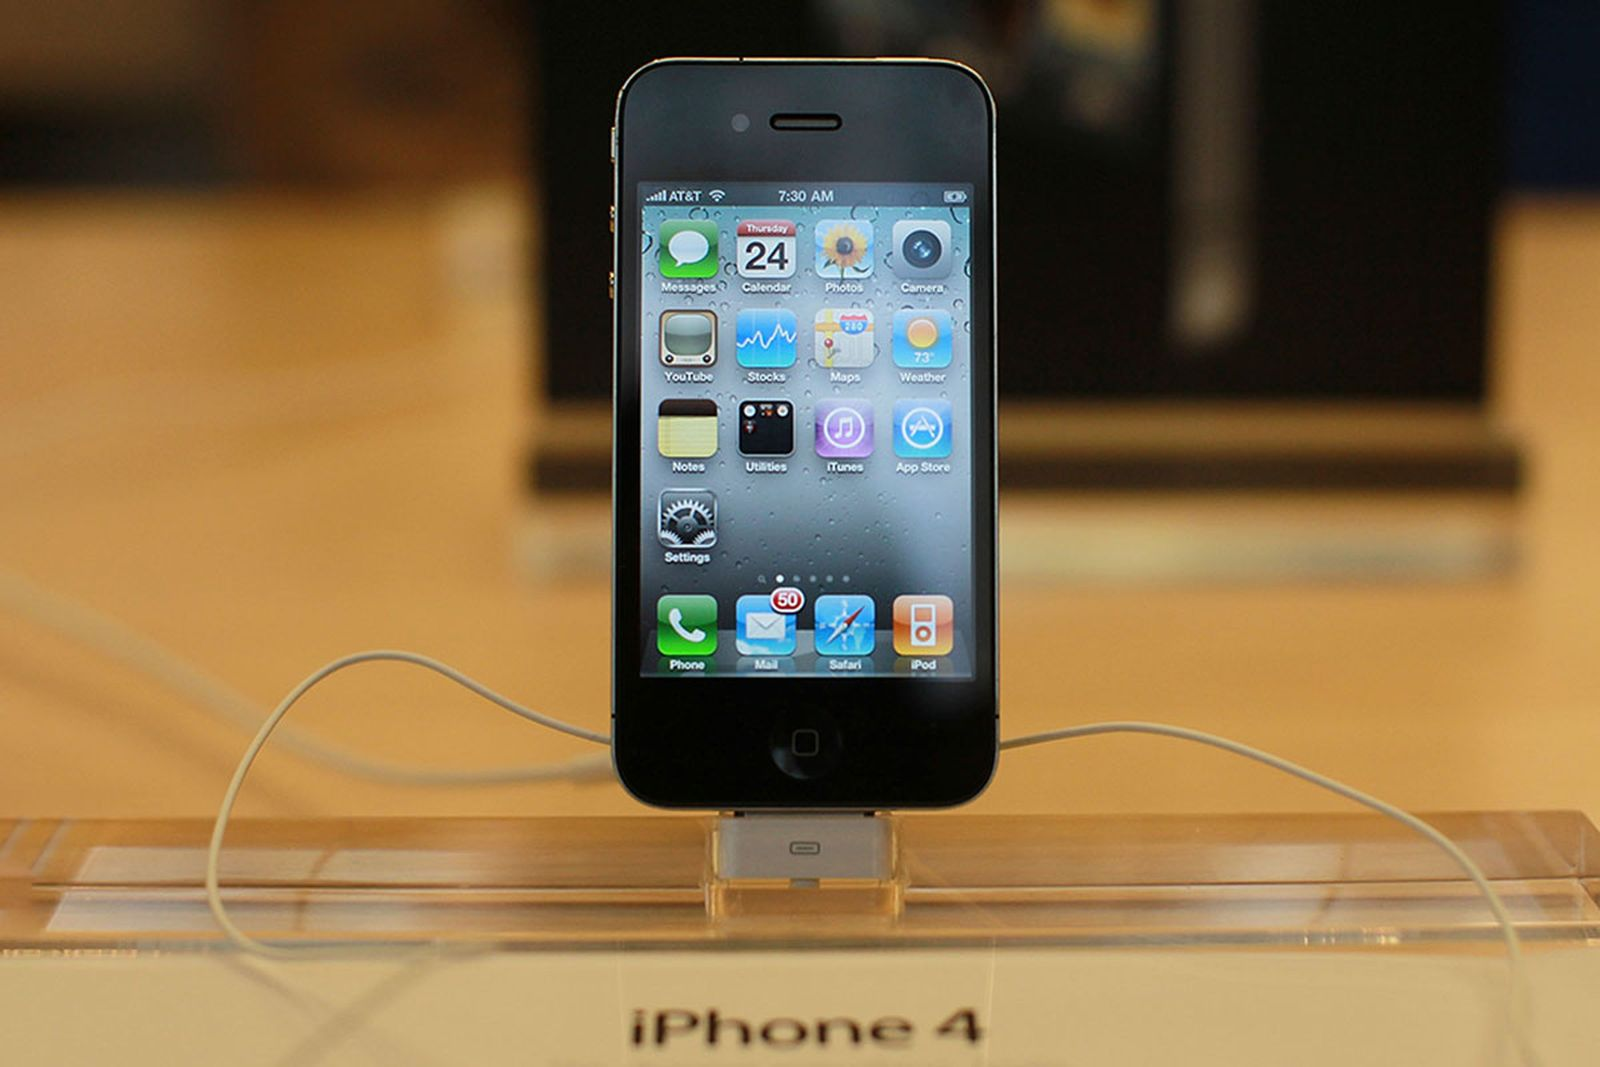 iPhone 4 is displayed at the flagship Apple Store